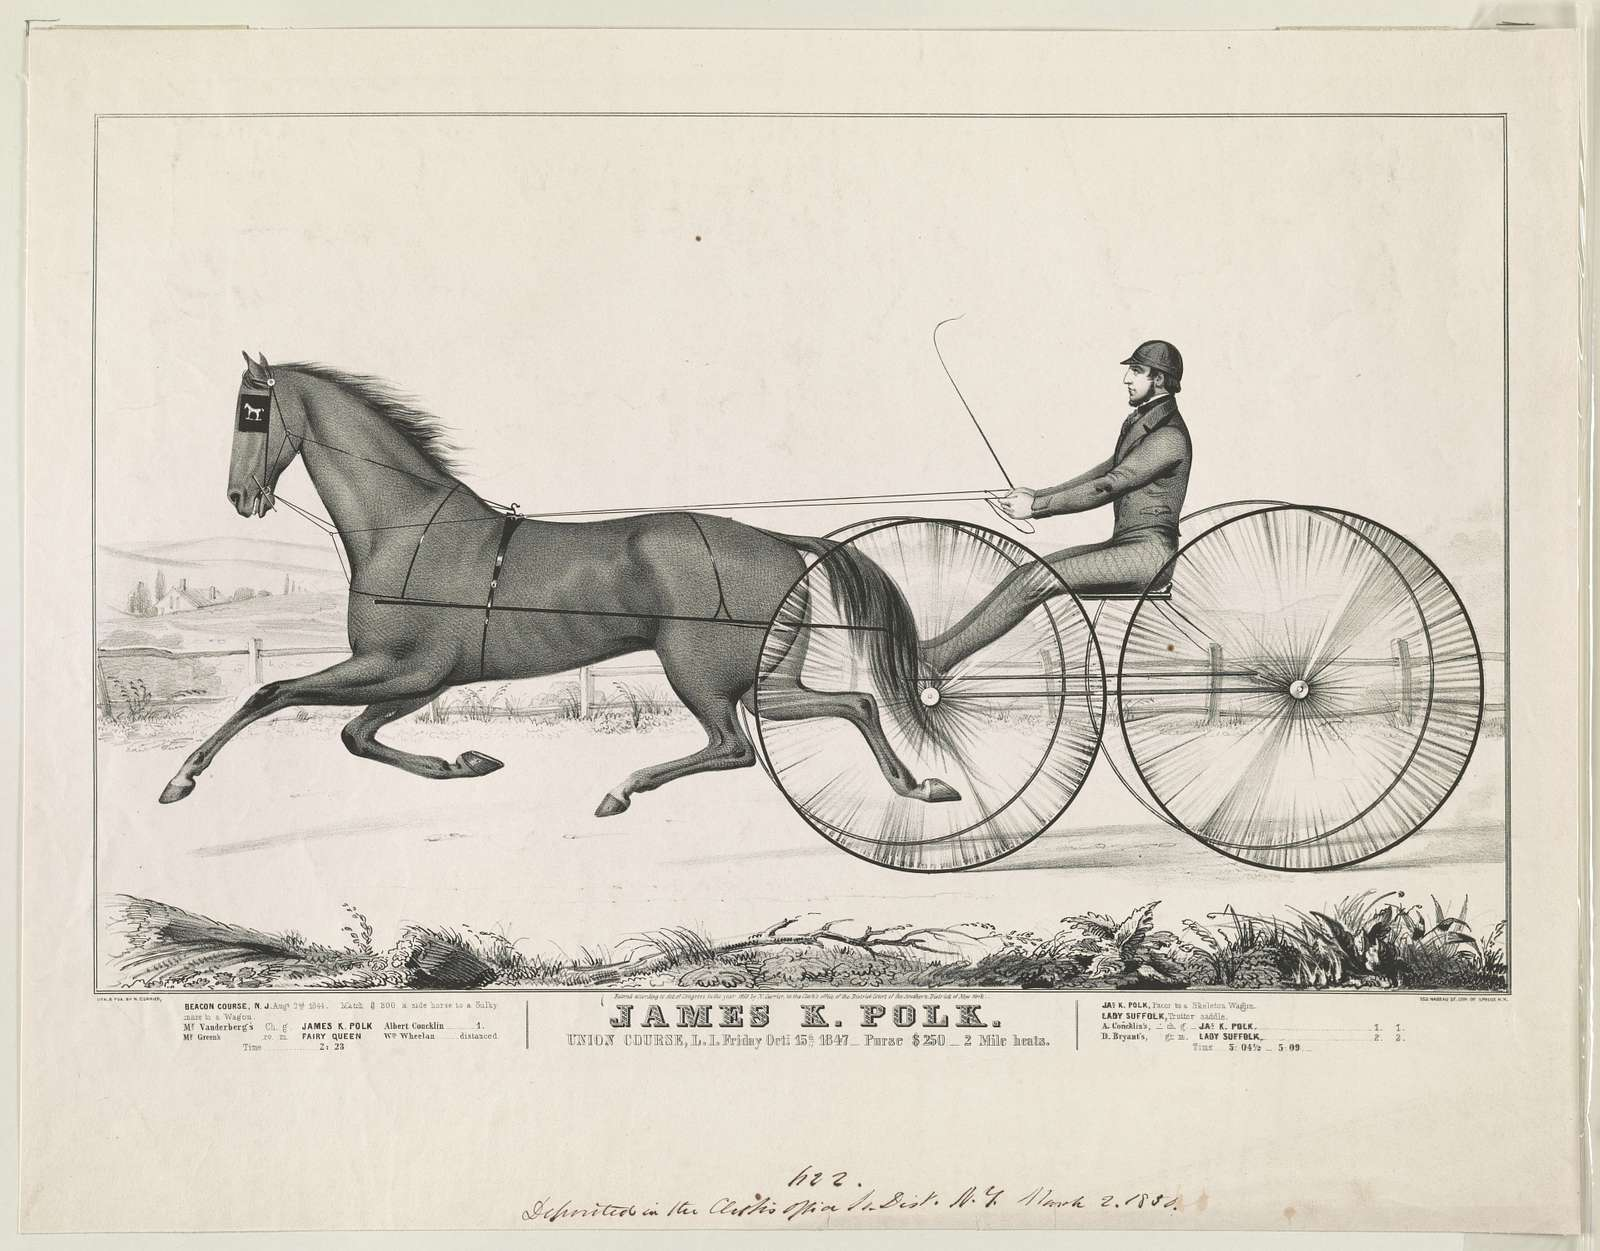 James K. Polk, Union Course, L.I., Friday, Oct. 15, 1847 / lith and pub. by N. Currier.